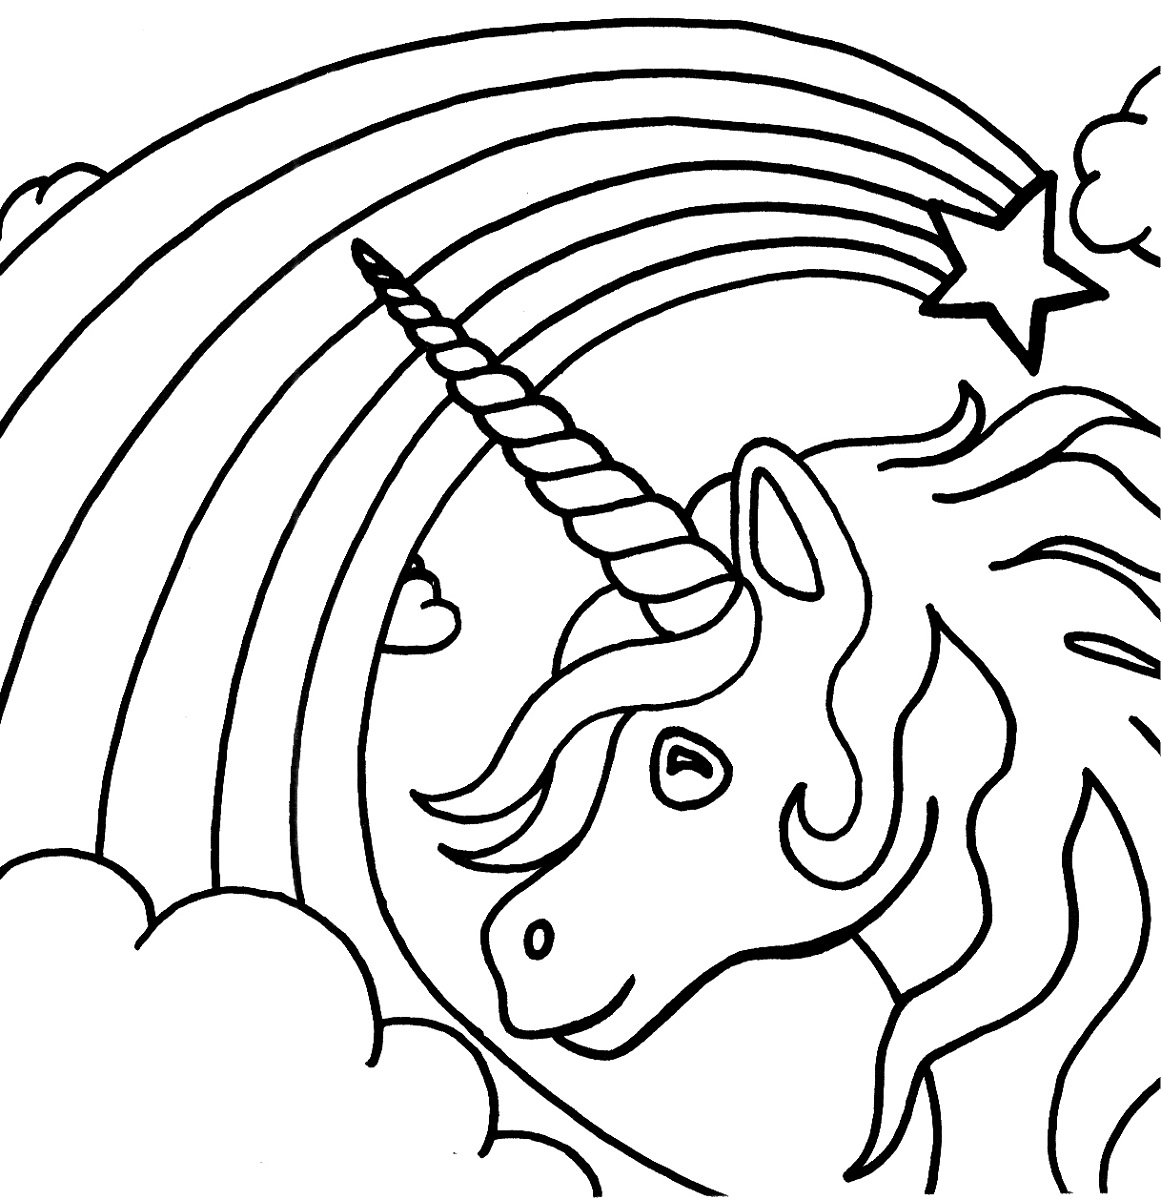 Unicorn Rainbow Coloring Pages At Getcolorings